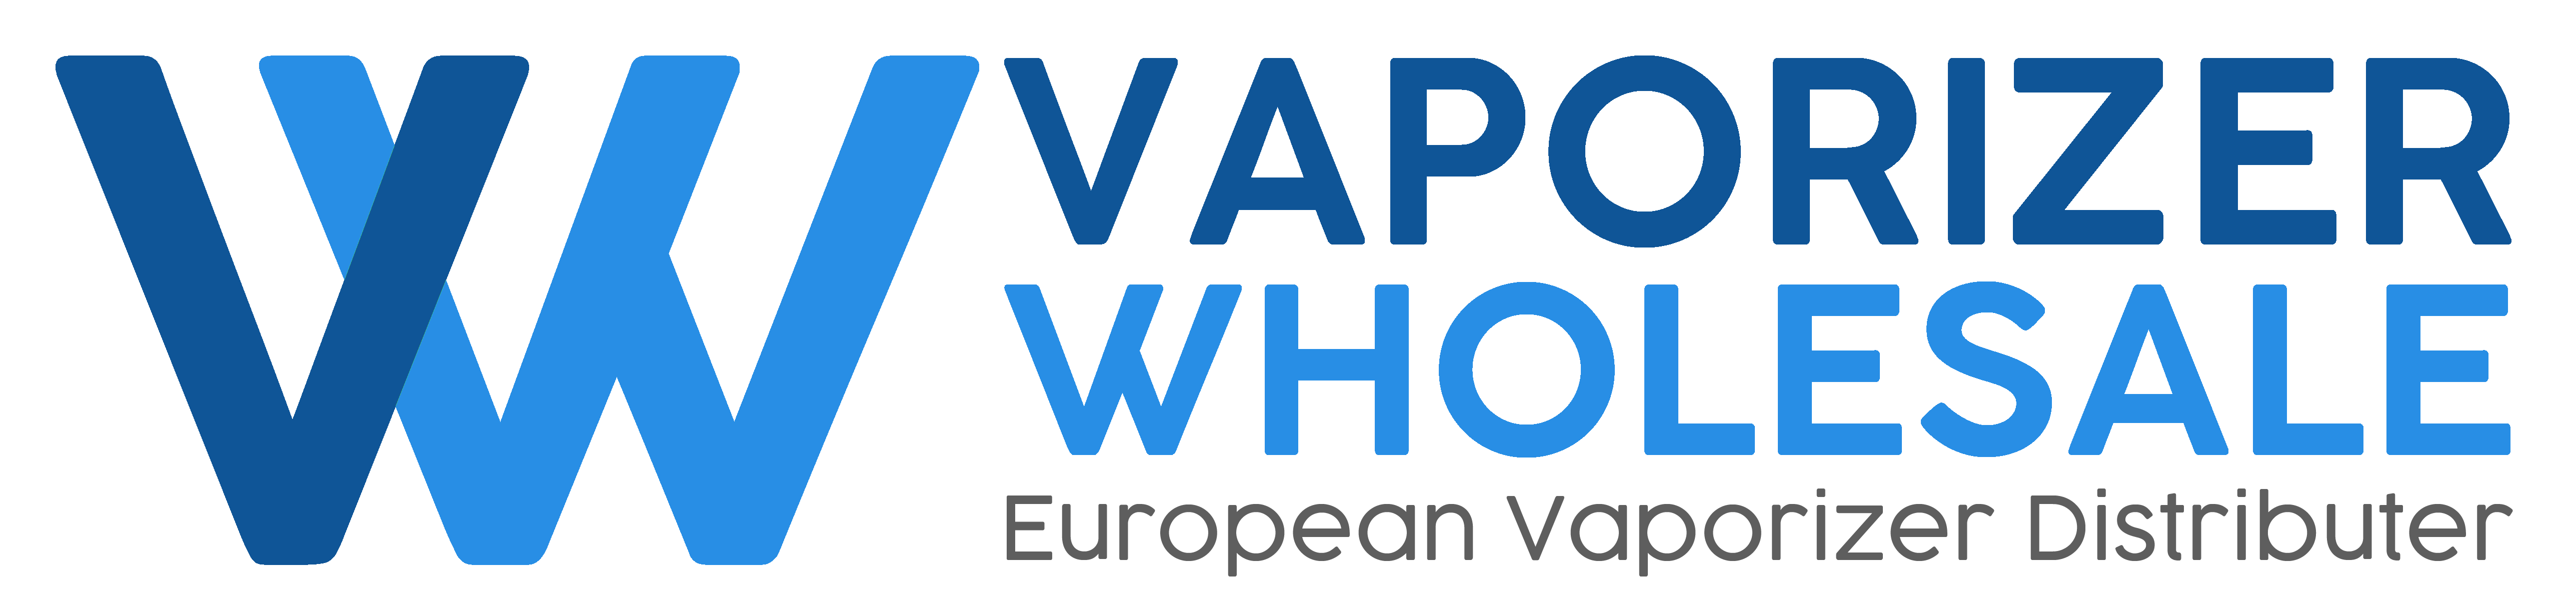 Vaporizer Wholesale